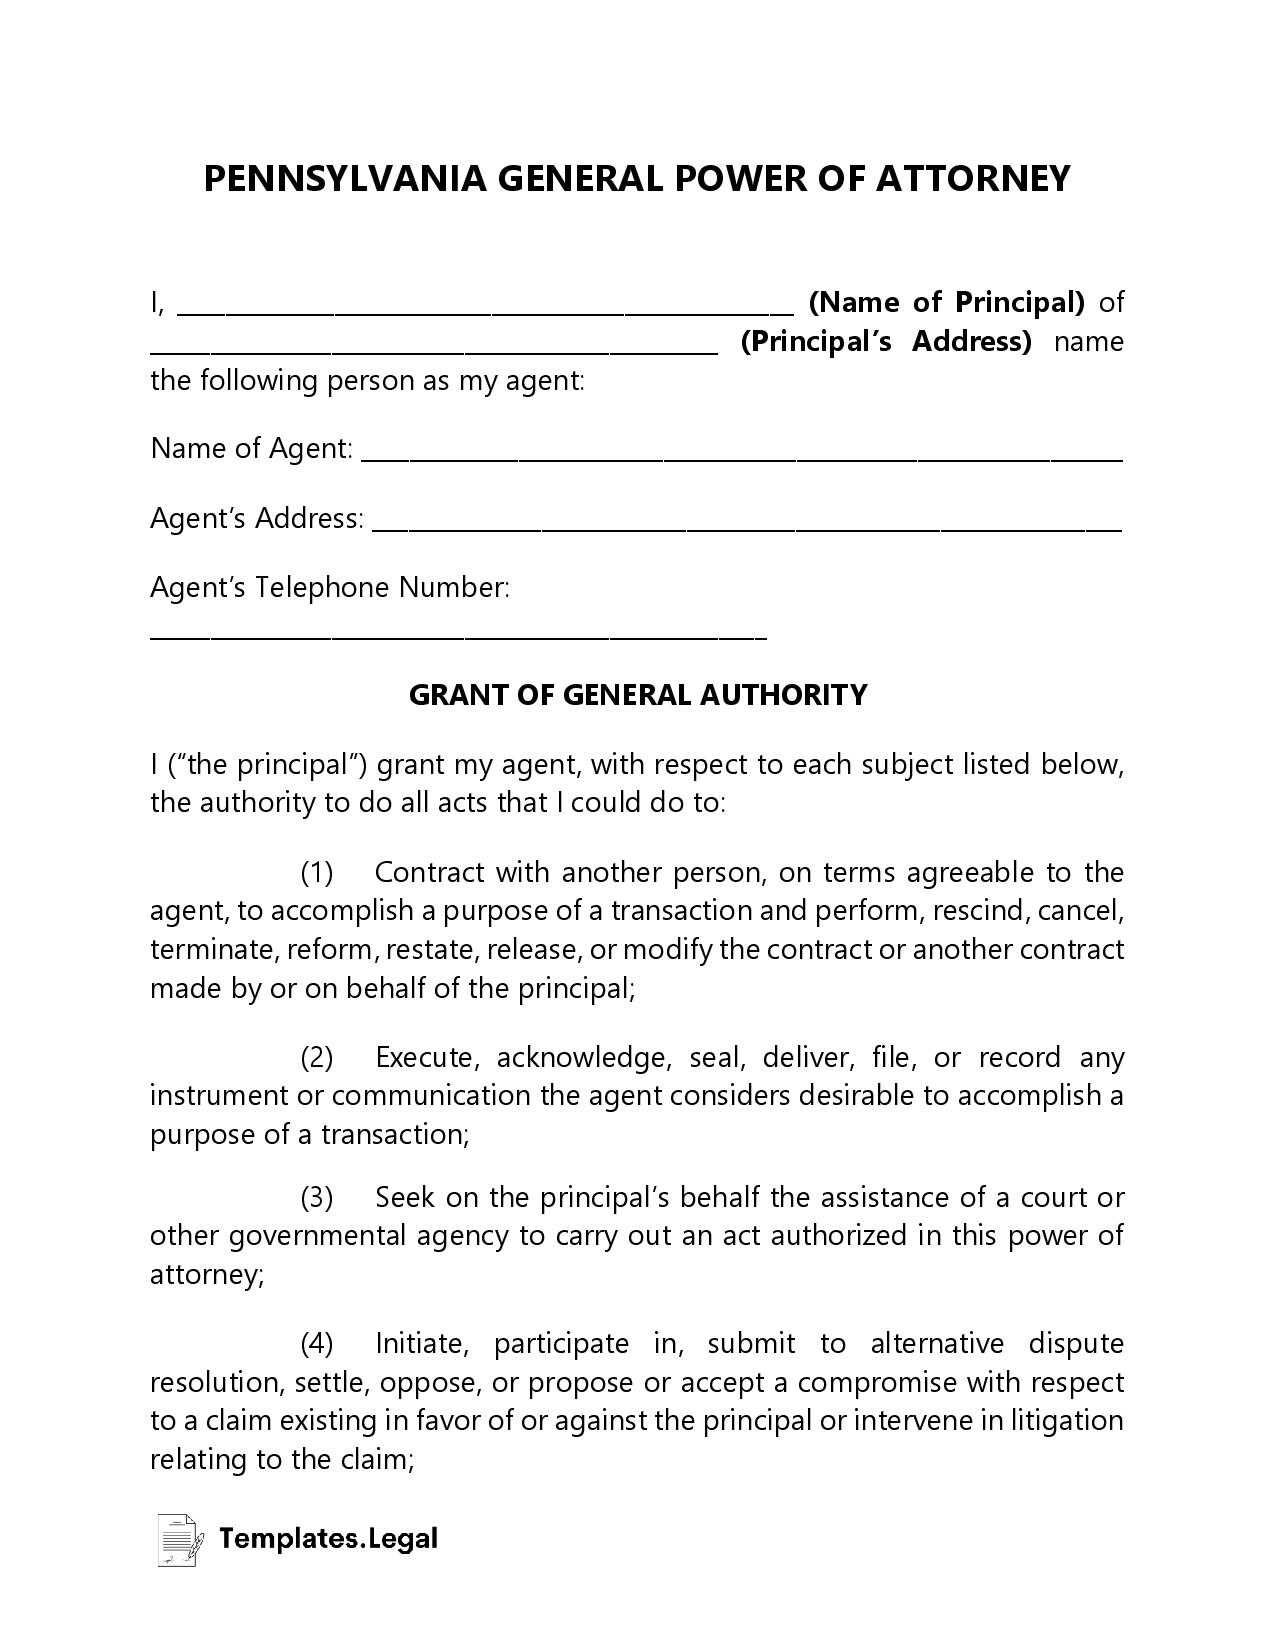 Pennsylvania General Power of Attorney - Templates.Legal